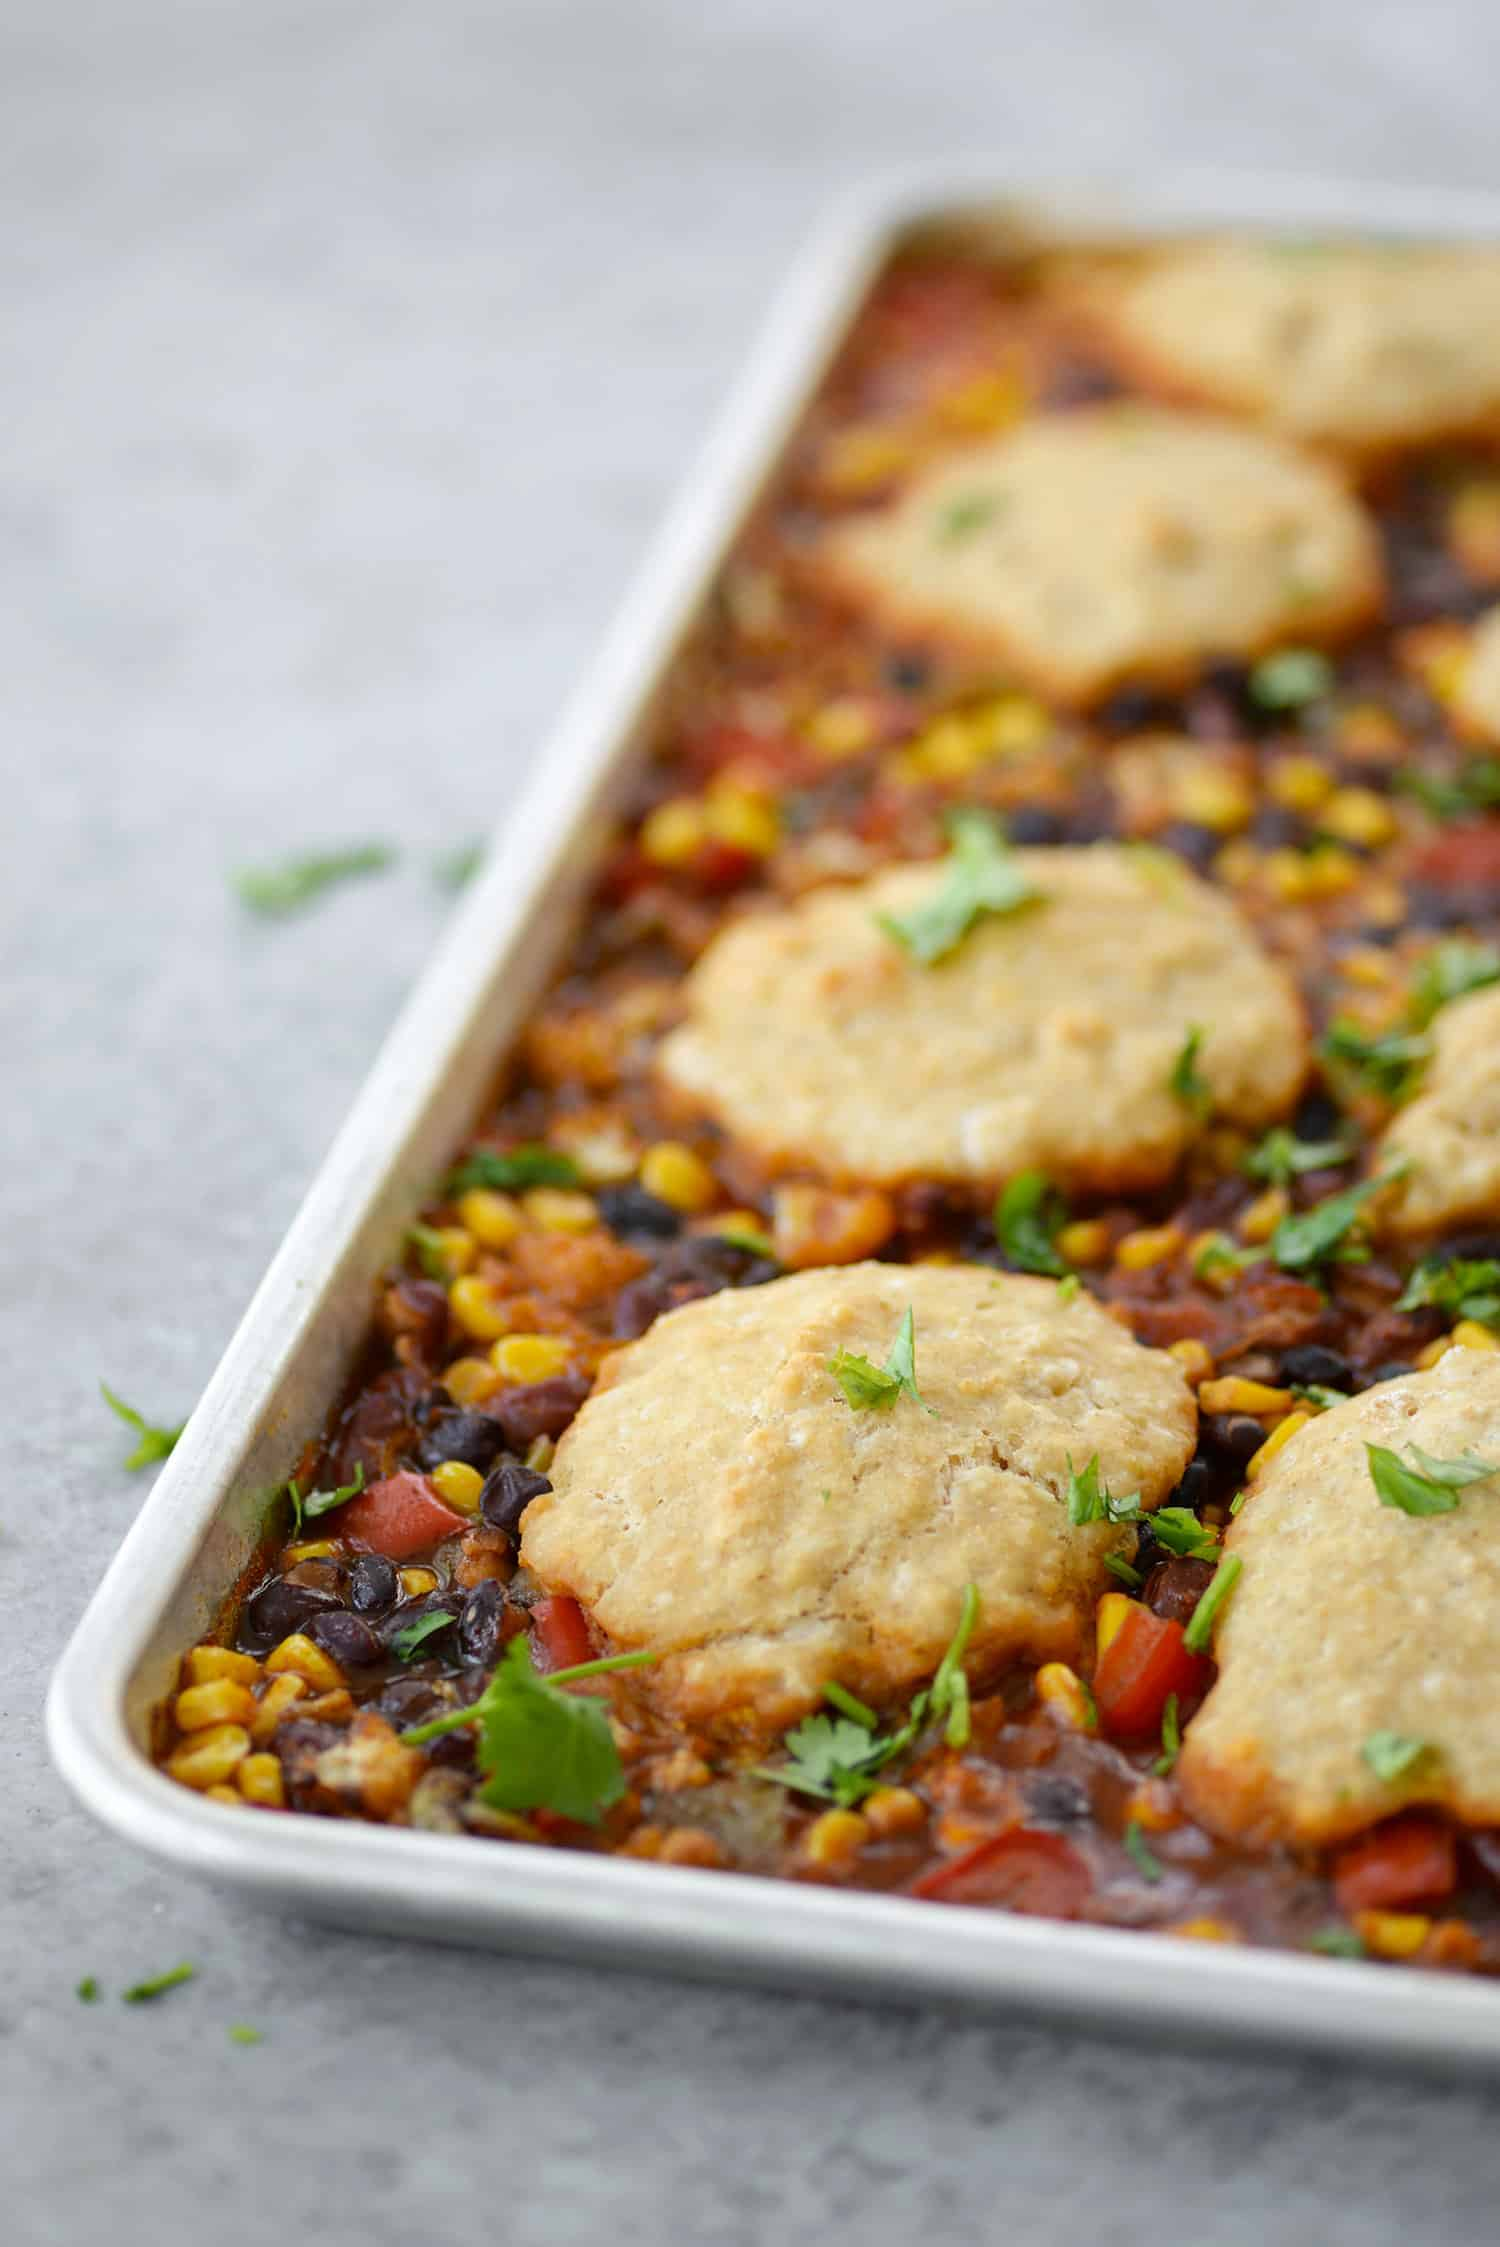 Sheet pan vegetable chili with beer biscuits delish knowledge sheet pan vegetable chili with beer biscuits you will love this all in forumfinder Choice Image